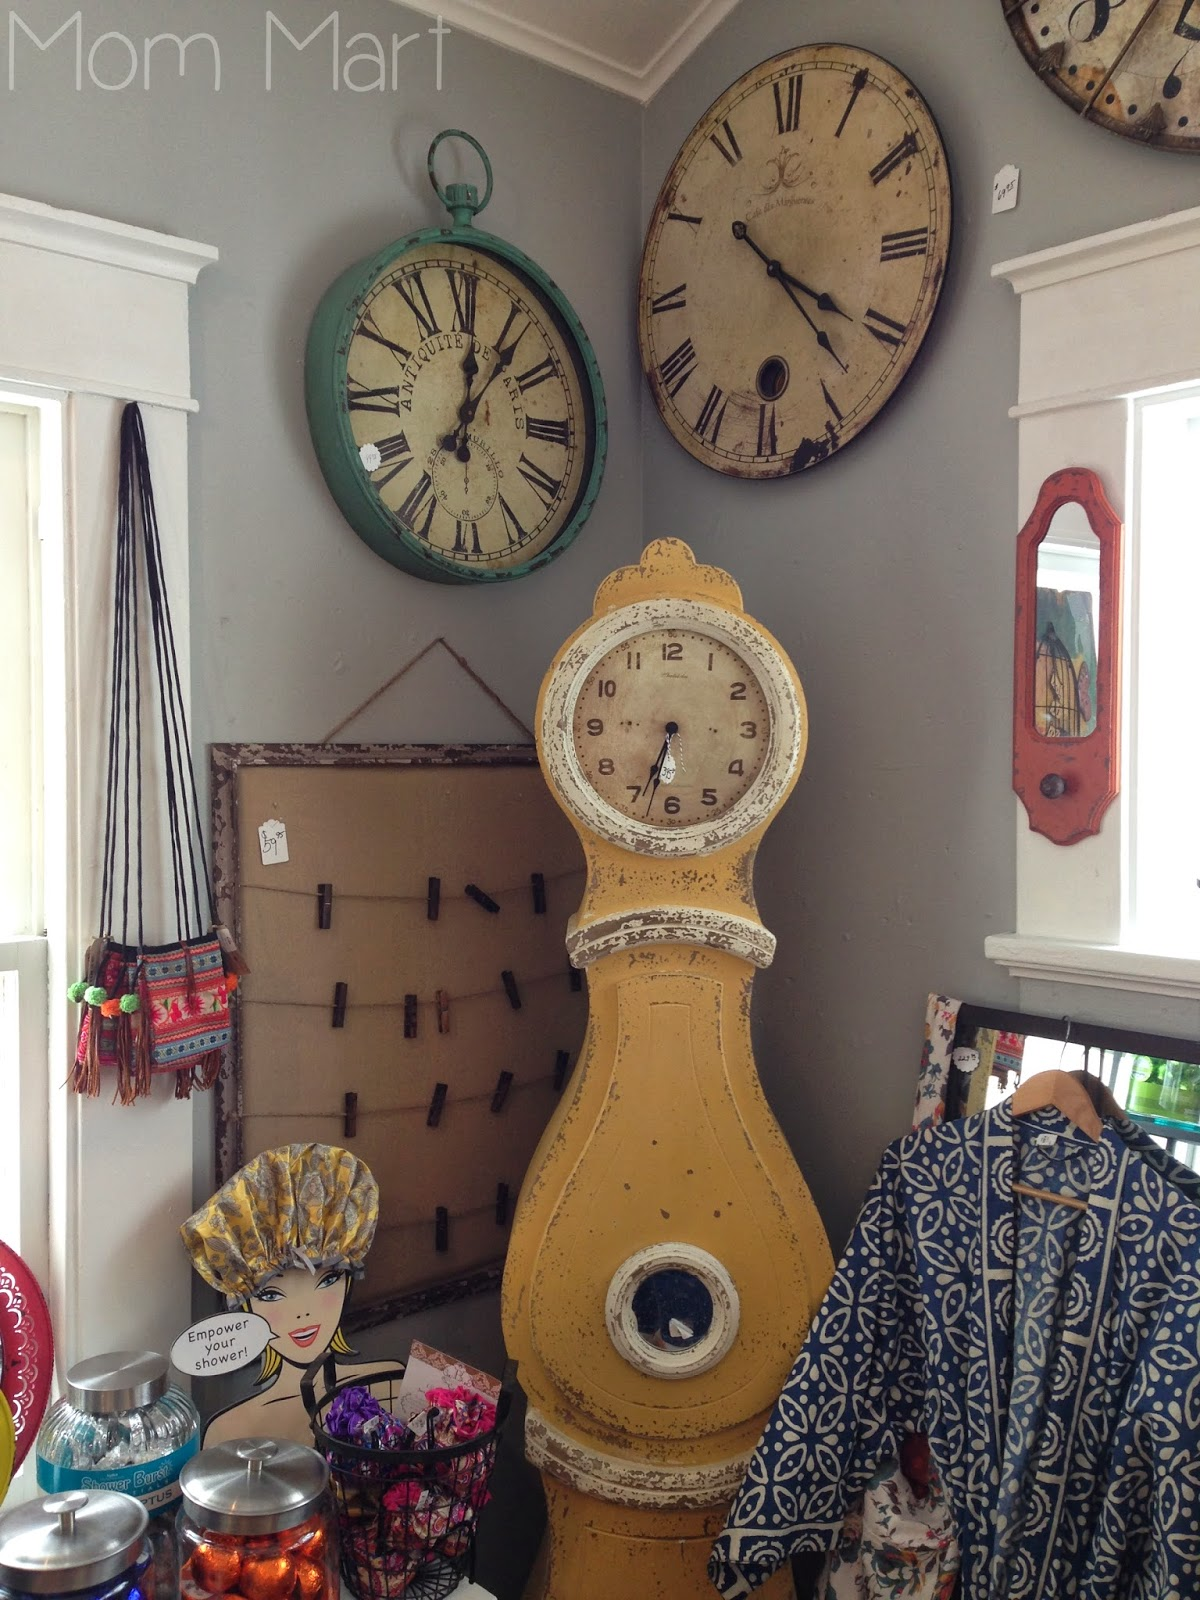 Shopping for home goods #Shopping #ForTheHome #Decorate #Clocks #HomeDecor